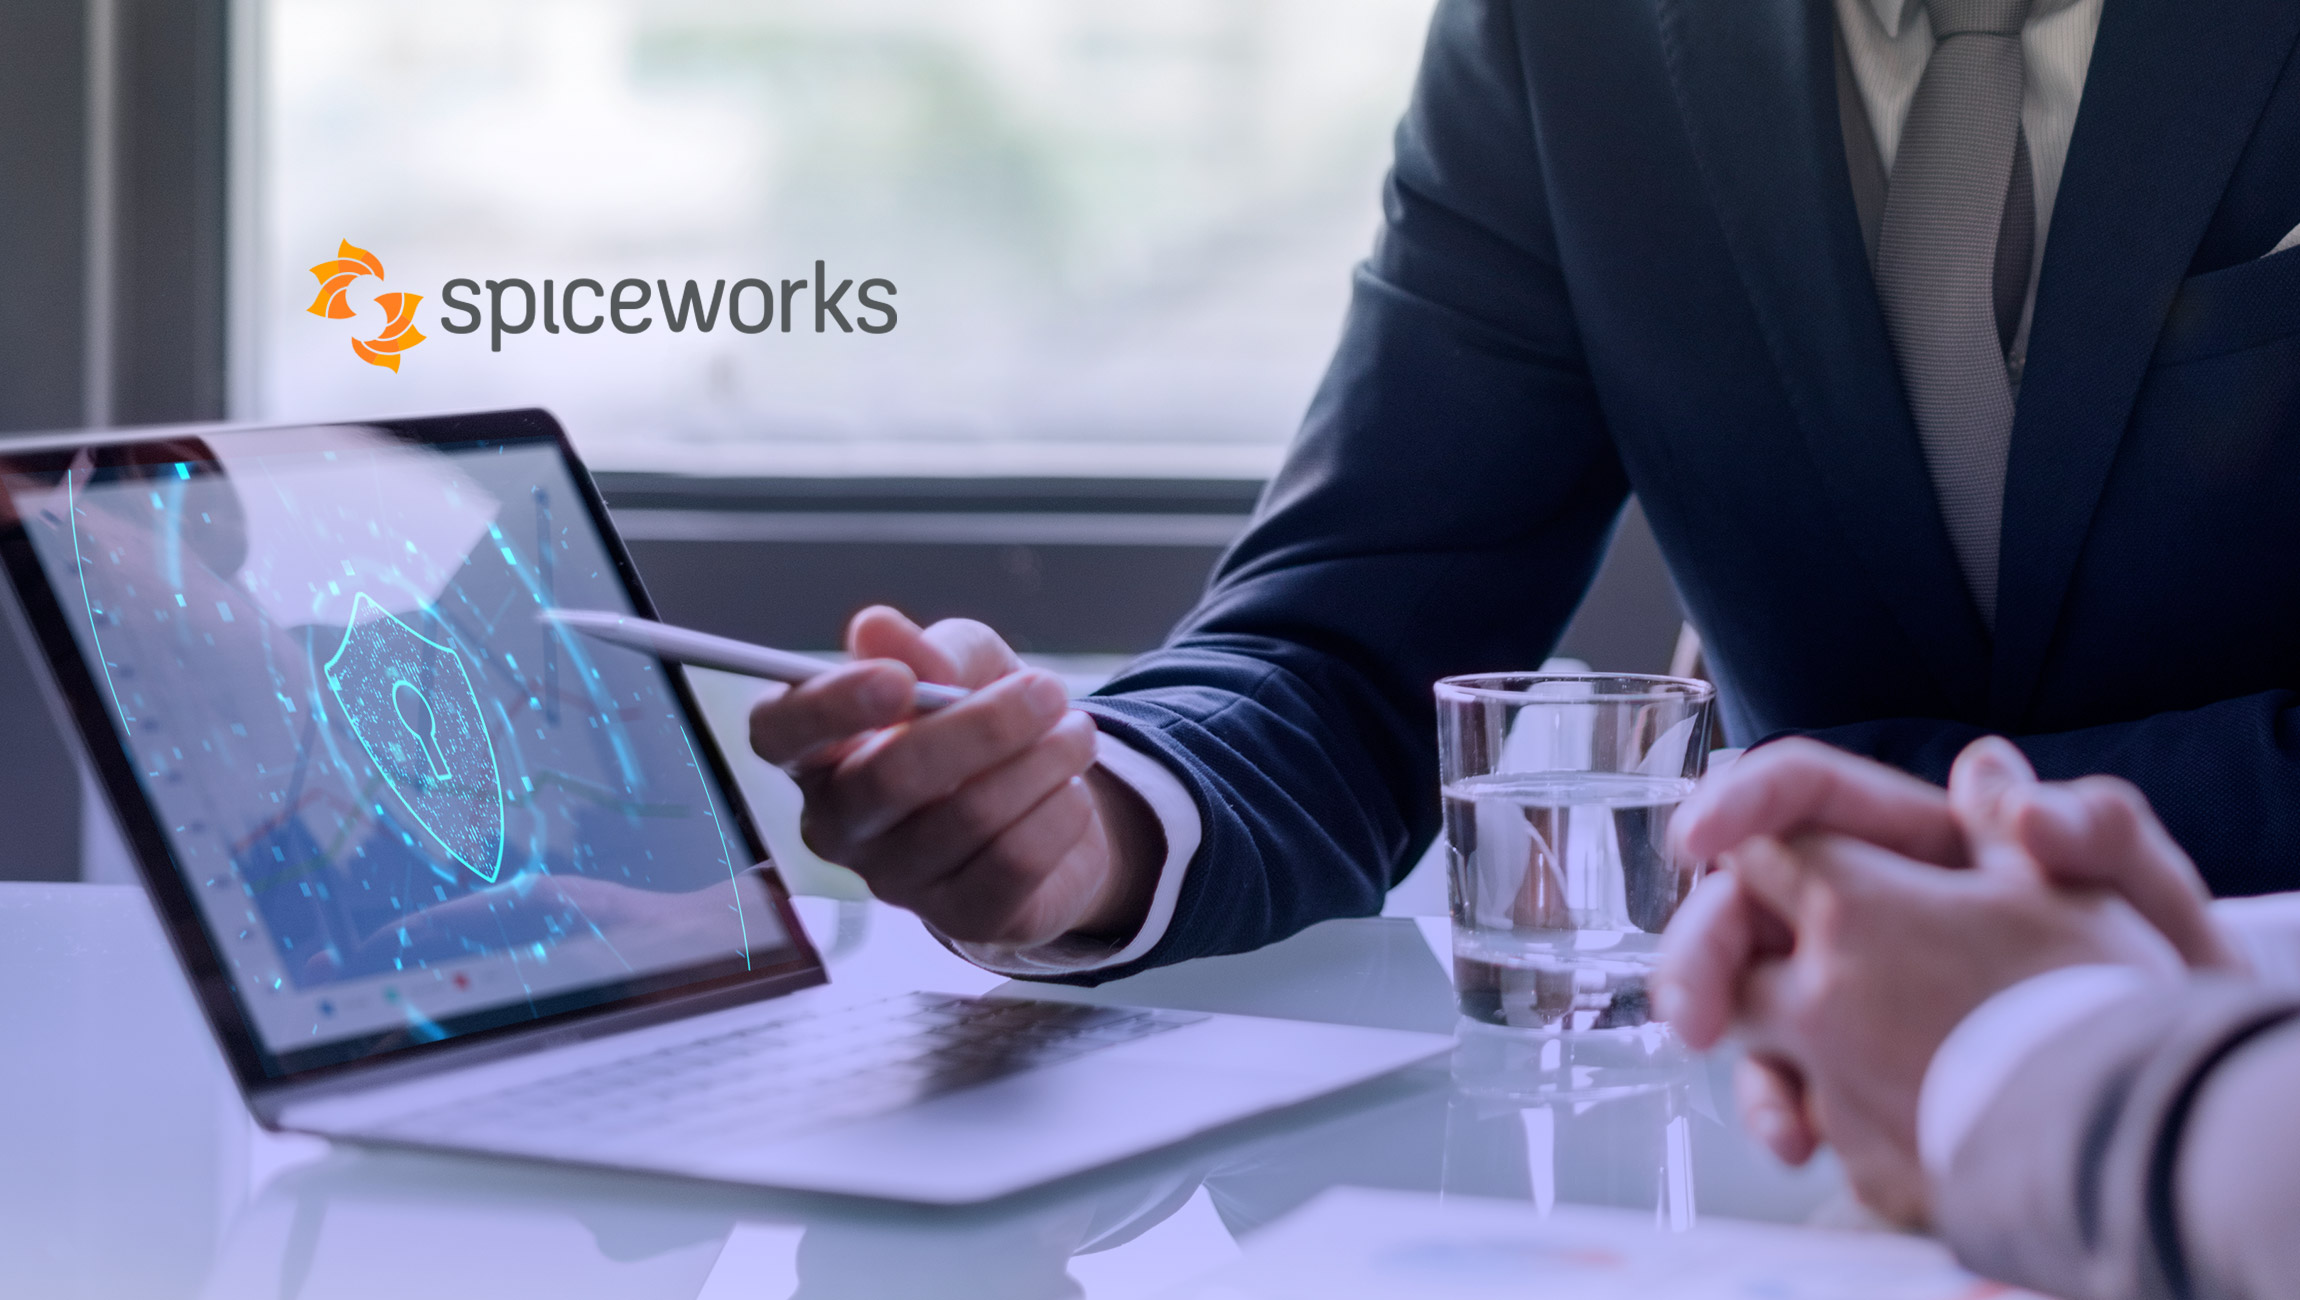 Spiceworks Expands Intent-Based Targeting Capabilities to Help Technology Brands Engage Businesses In-Market for Security, Cloud, and Business Application Technologies